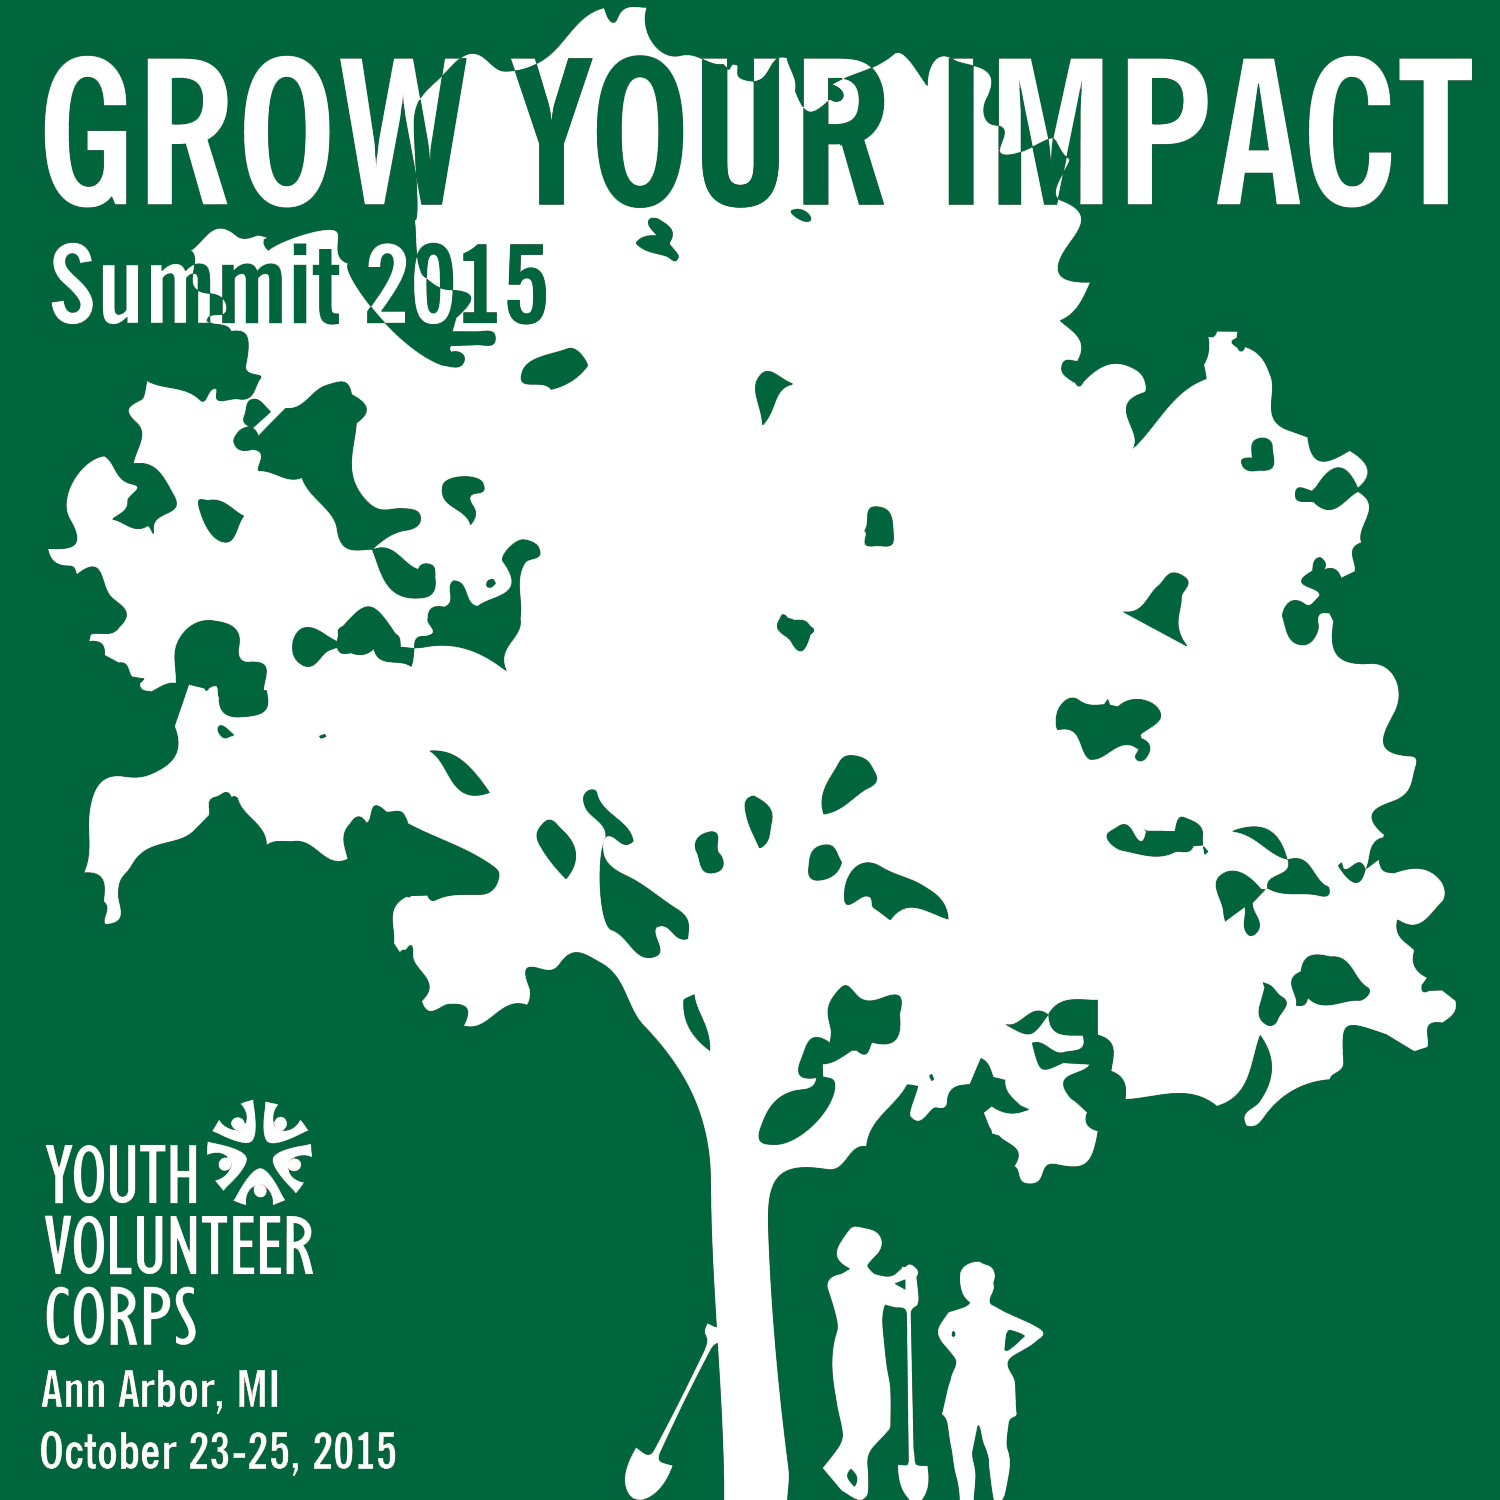 Summit 2015: Grow Your Impact